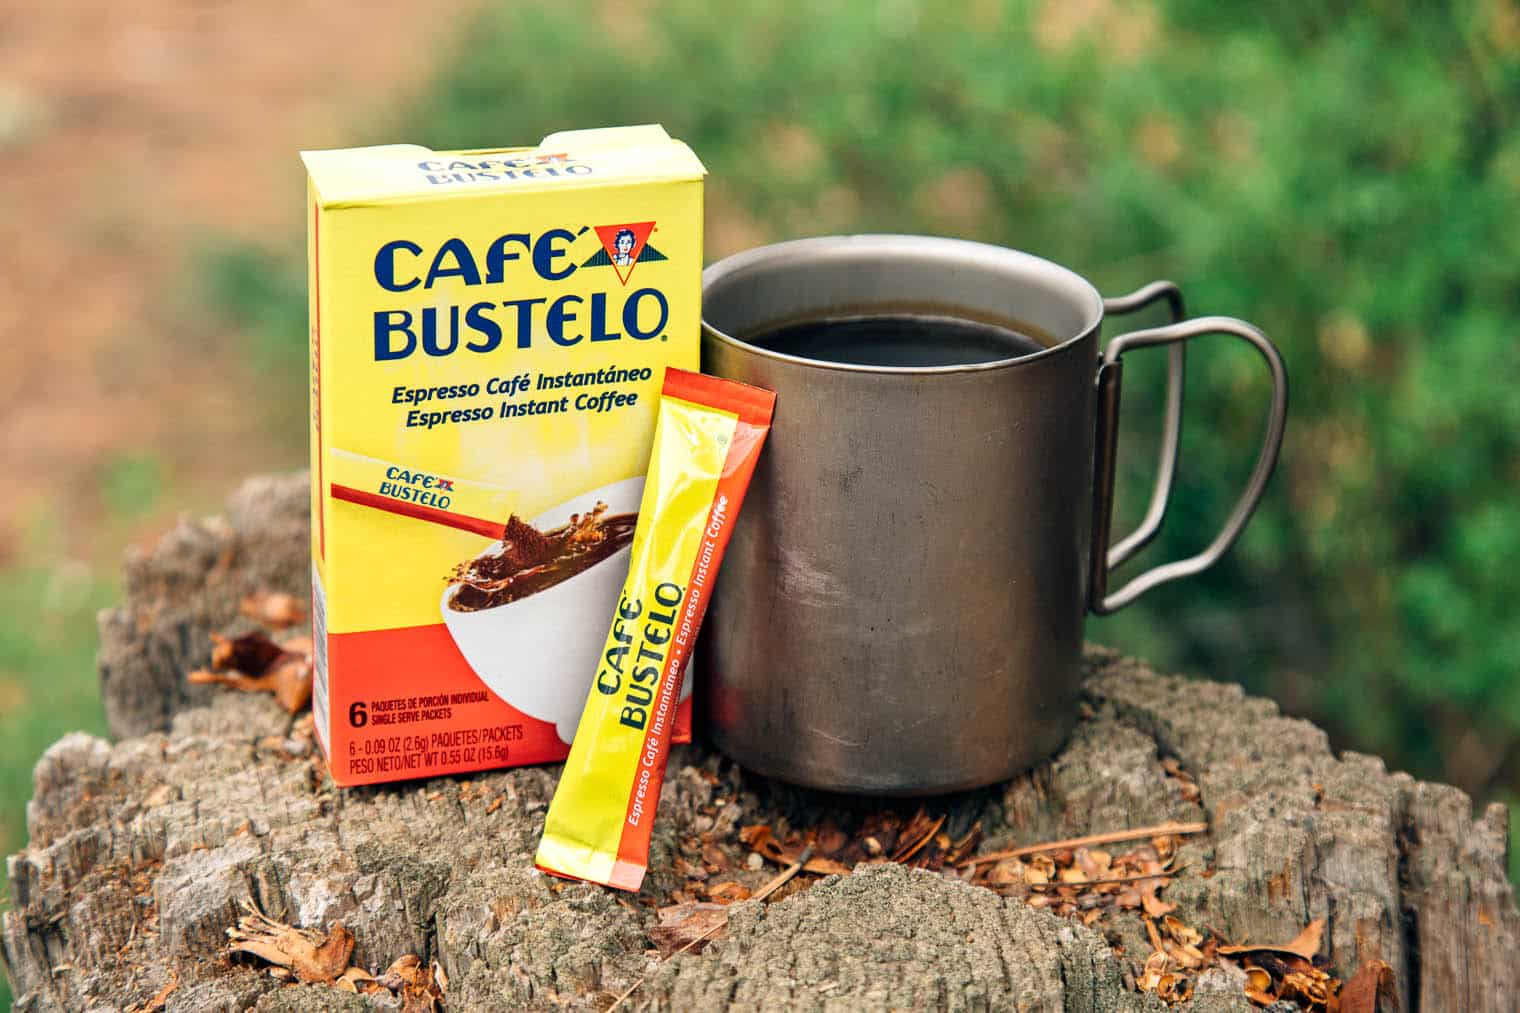 Cafe Bustelo Instant Coffee - Instant Coffee for Backpacking